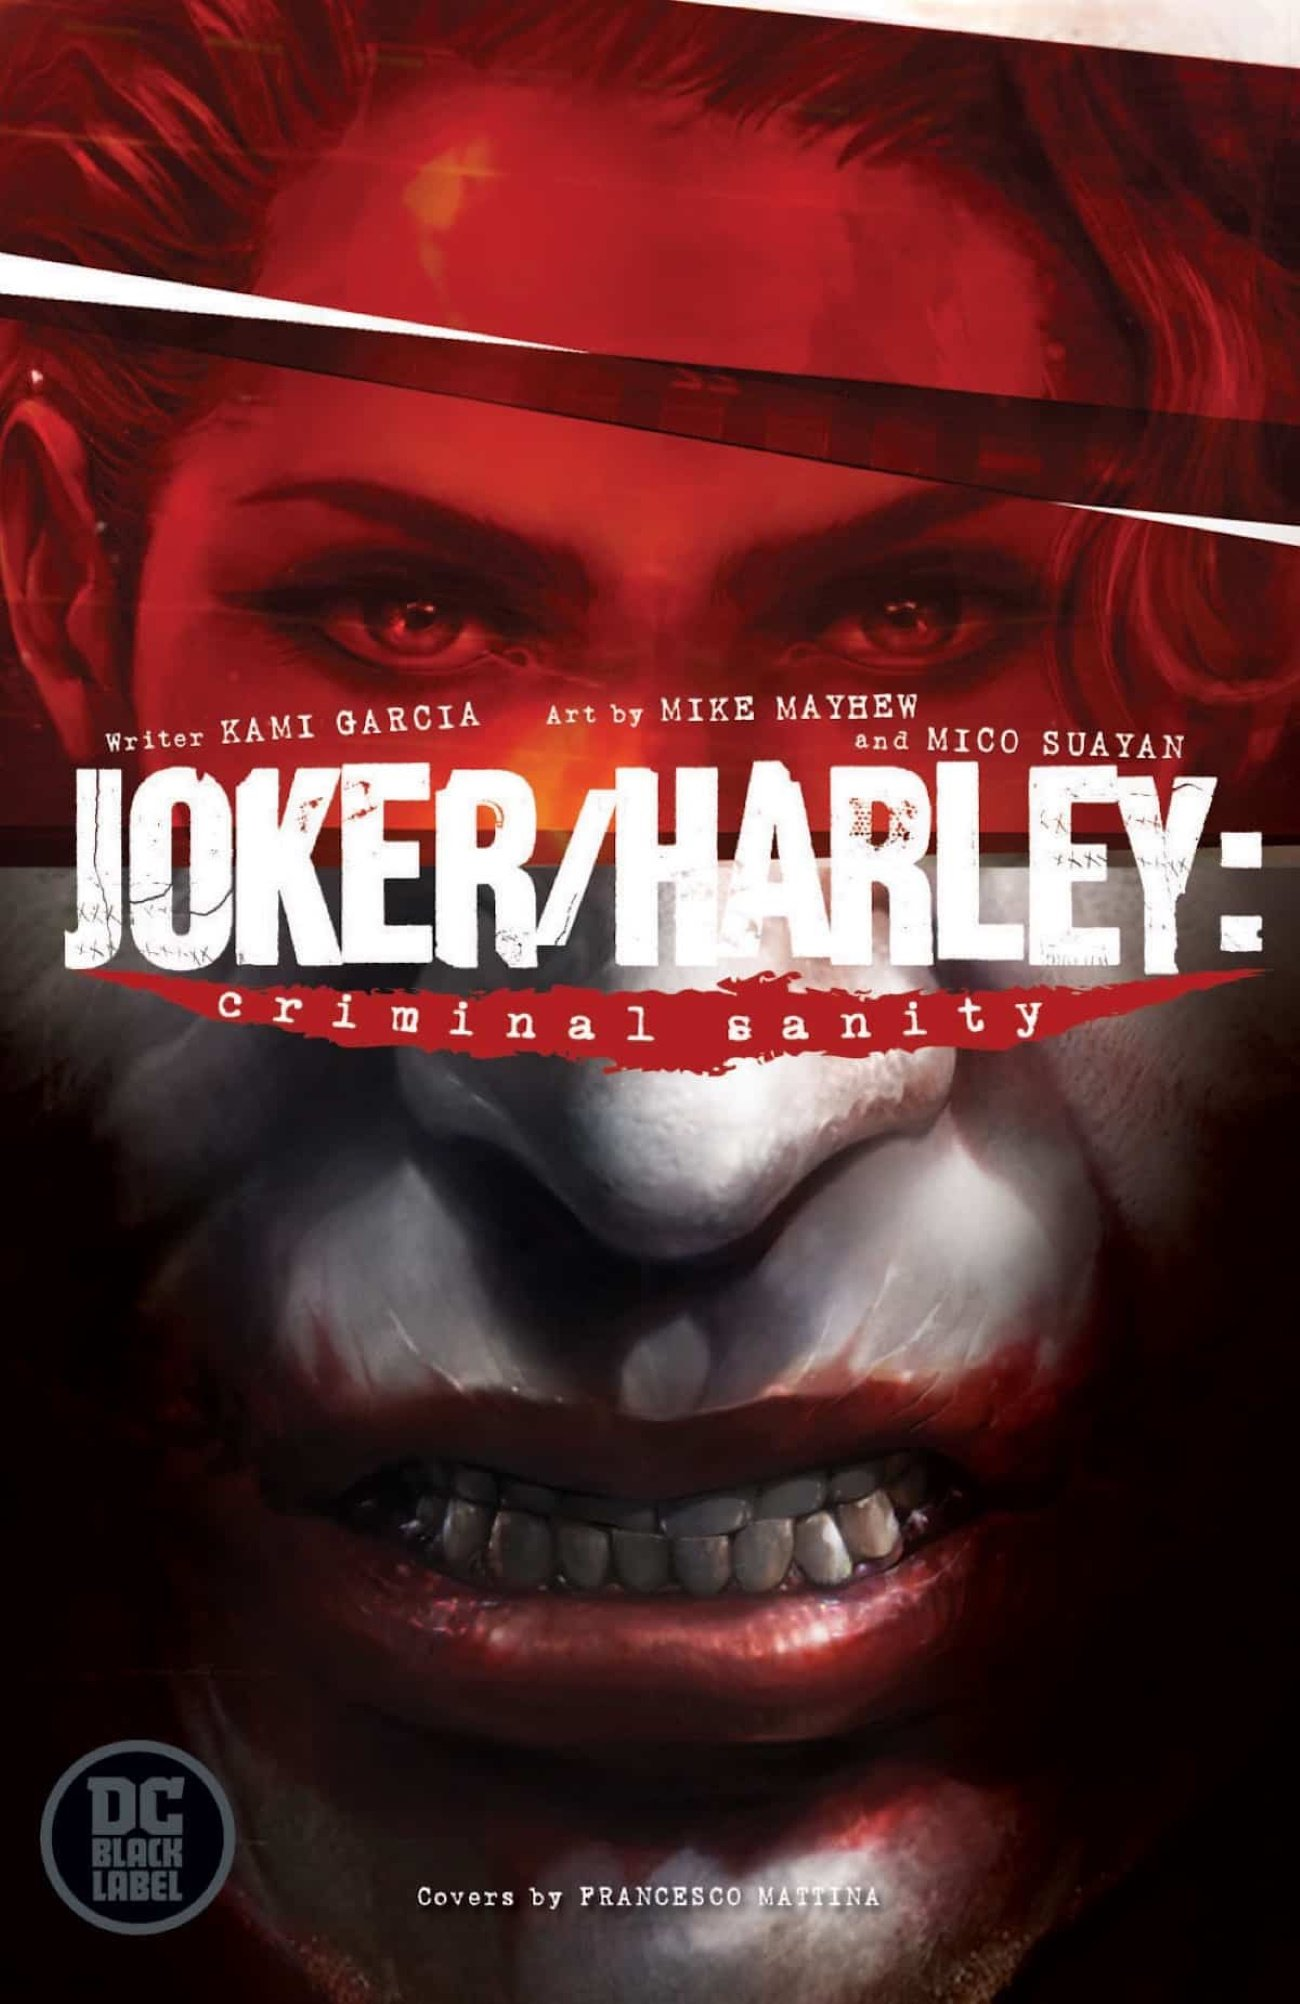 Joker-Harley-Criminal-Sanity-Cover